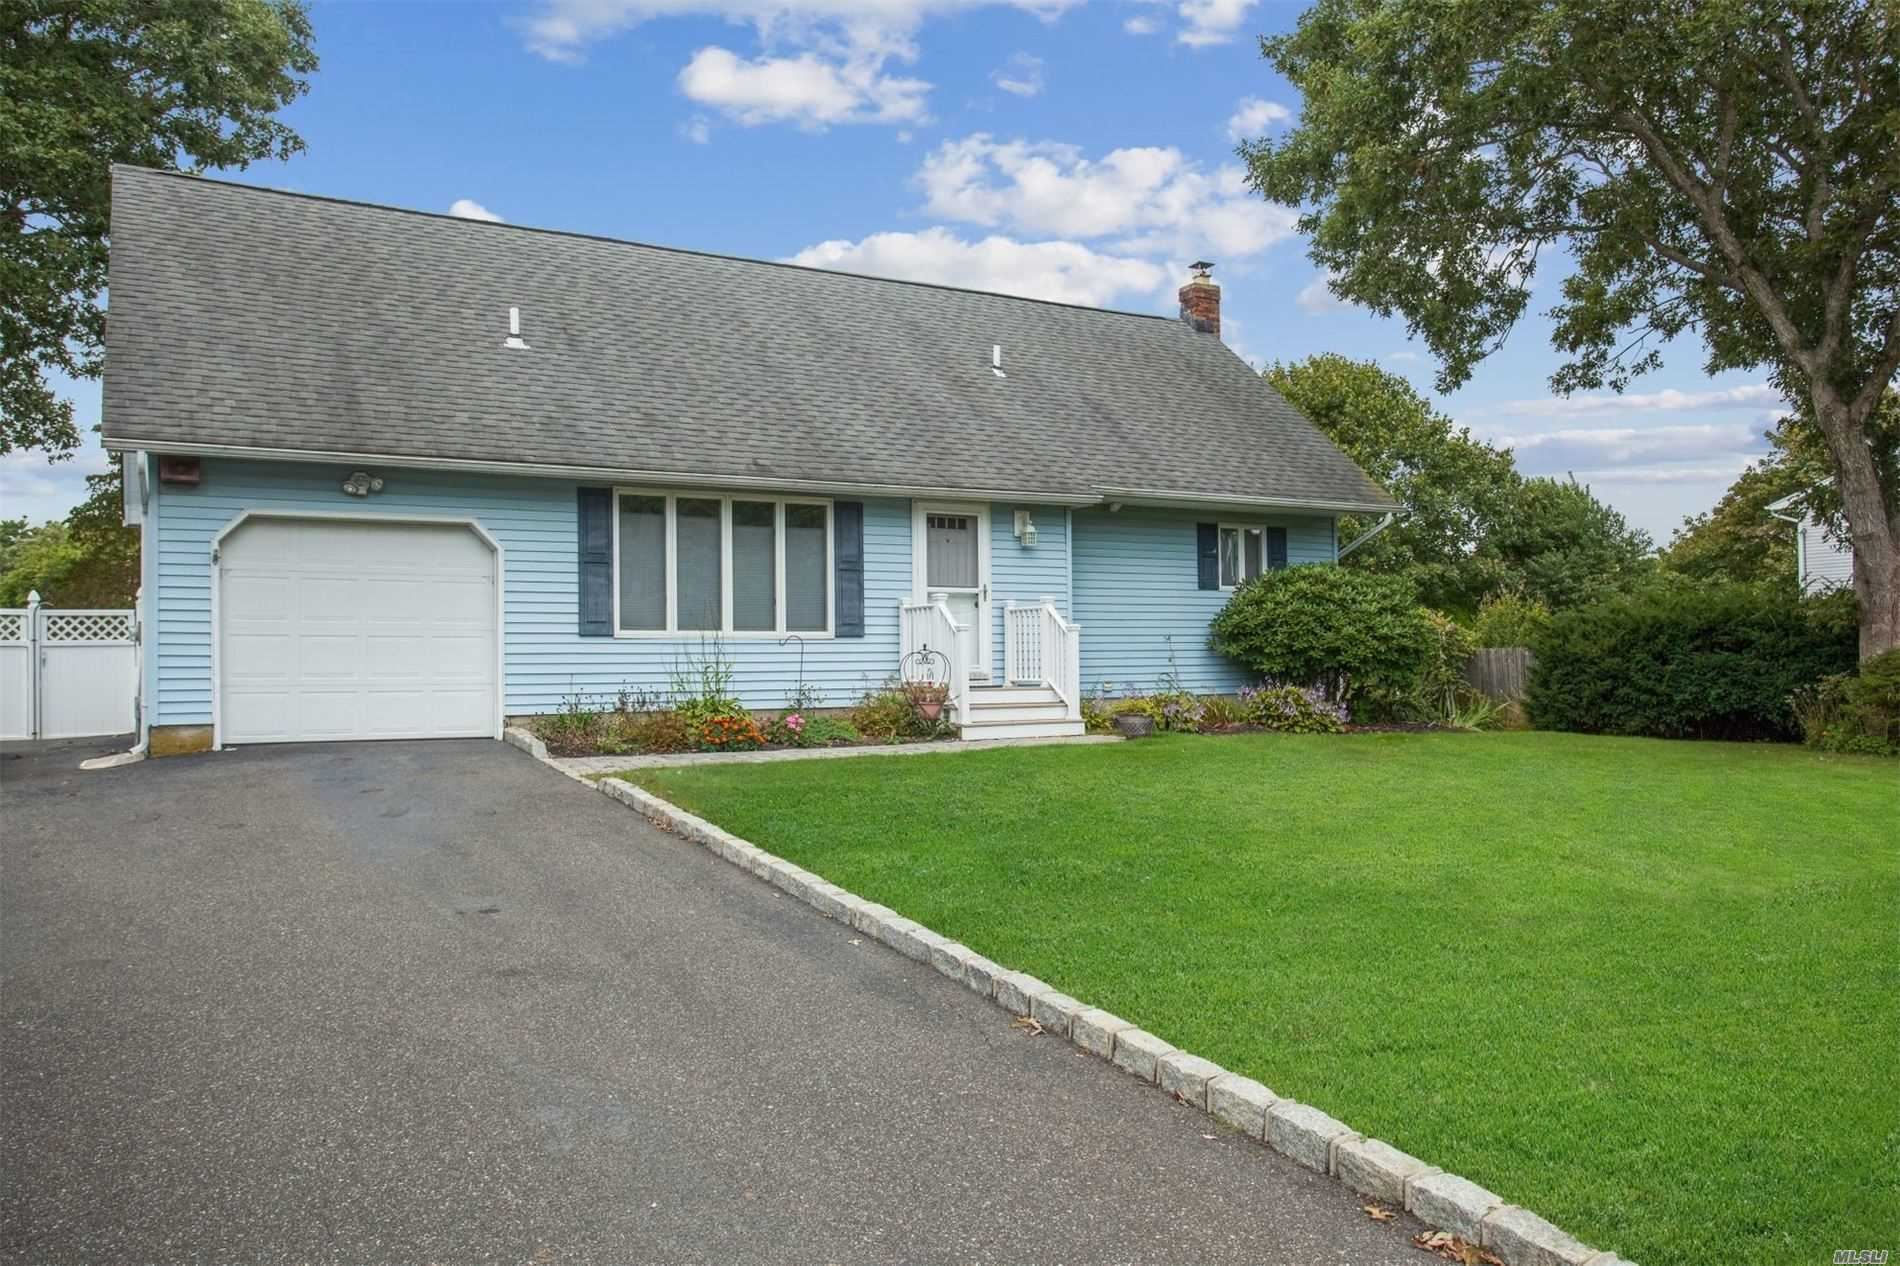 61 Camille Lane, Patchogue, NY 11772 - MLS#: 3190848